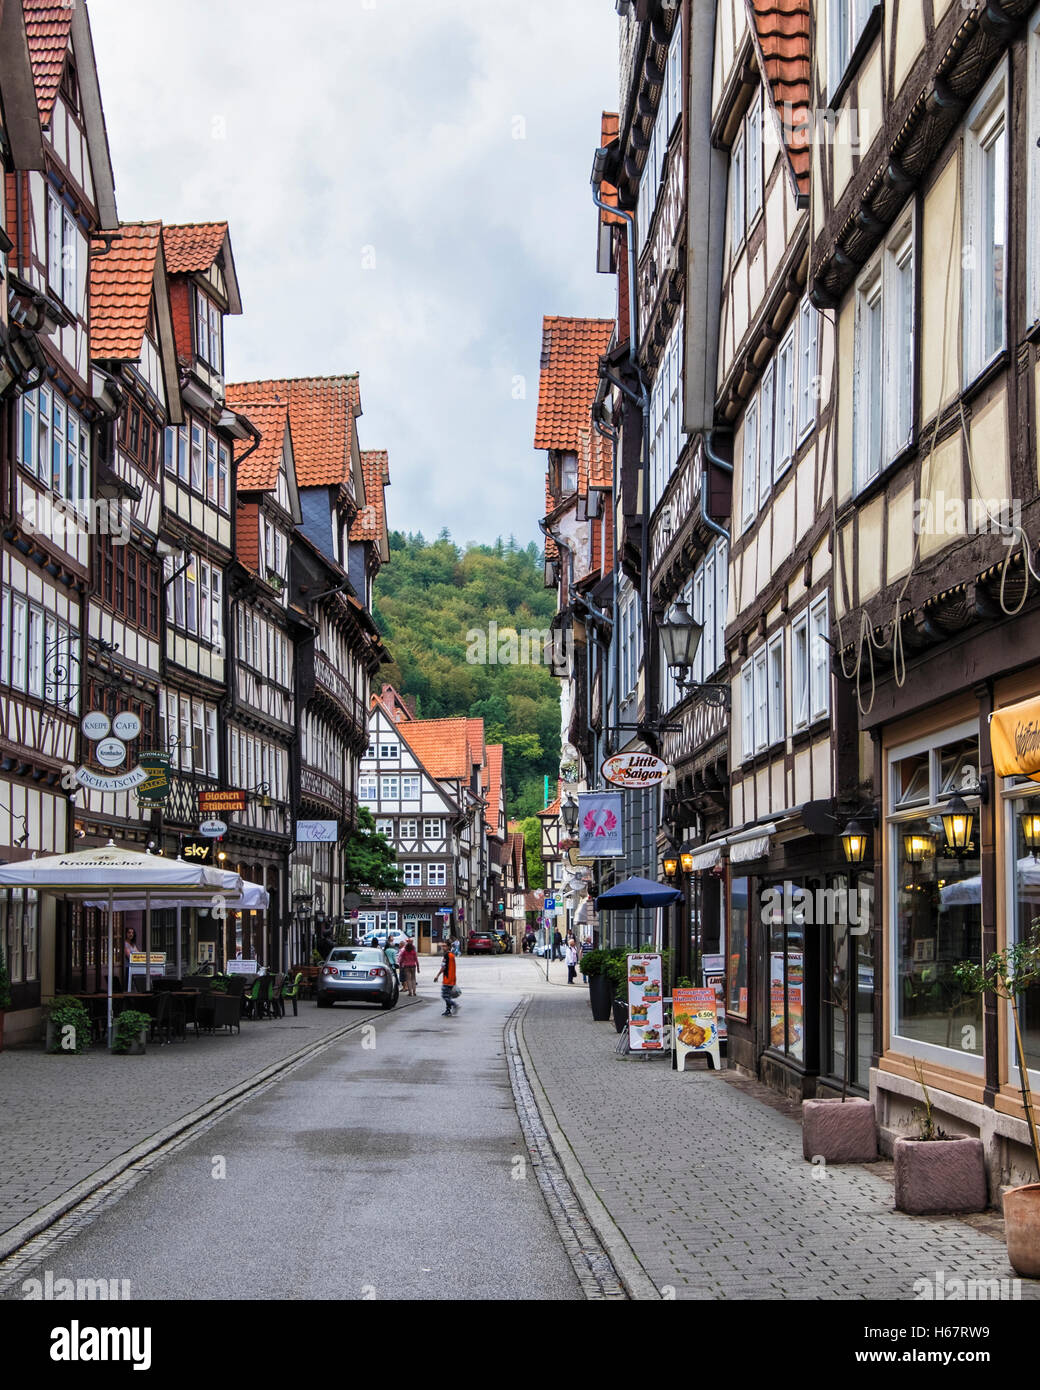 Hann. Münden, Lower Saxony, Germany. Picturesque street in medieval town lined with typical old half-timbered - Stock Image